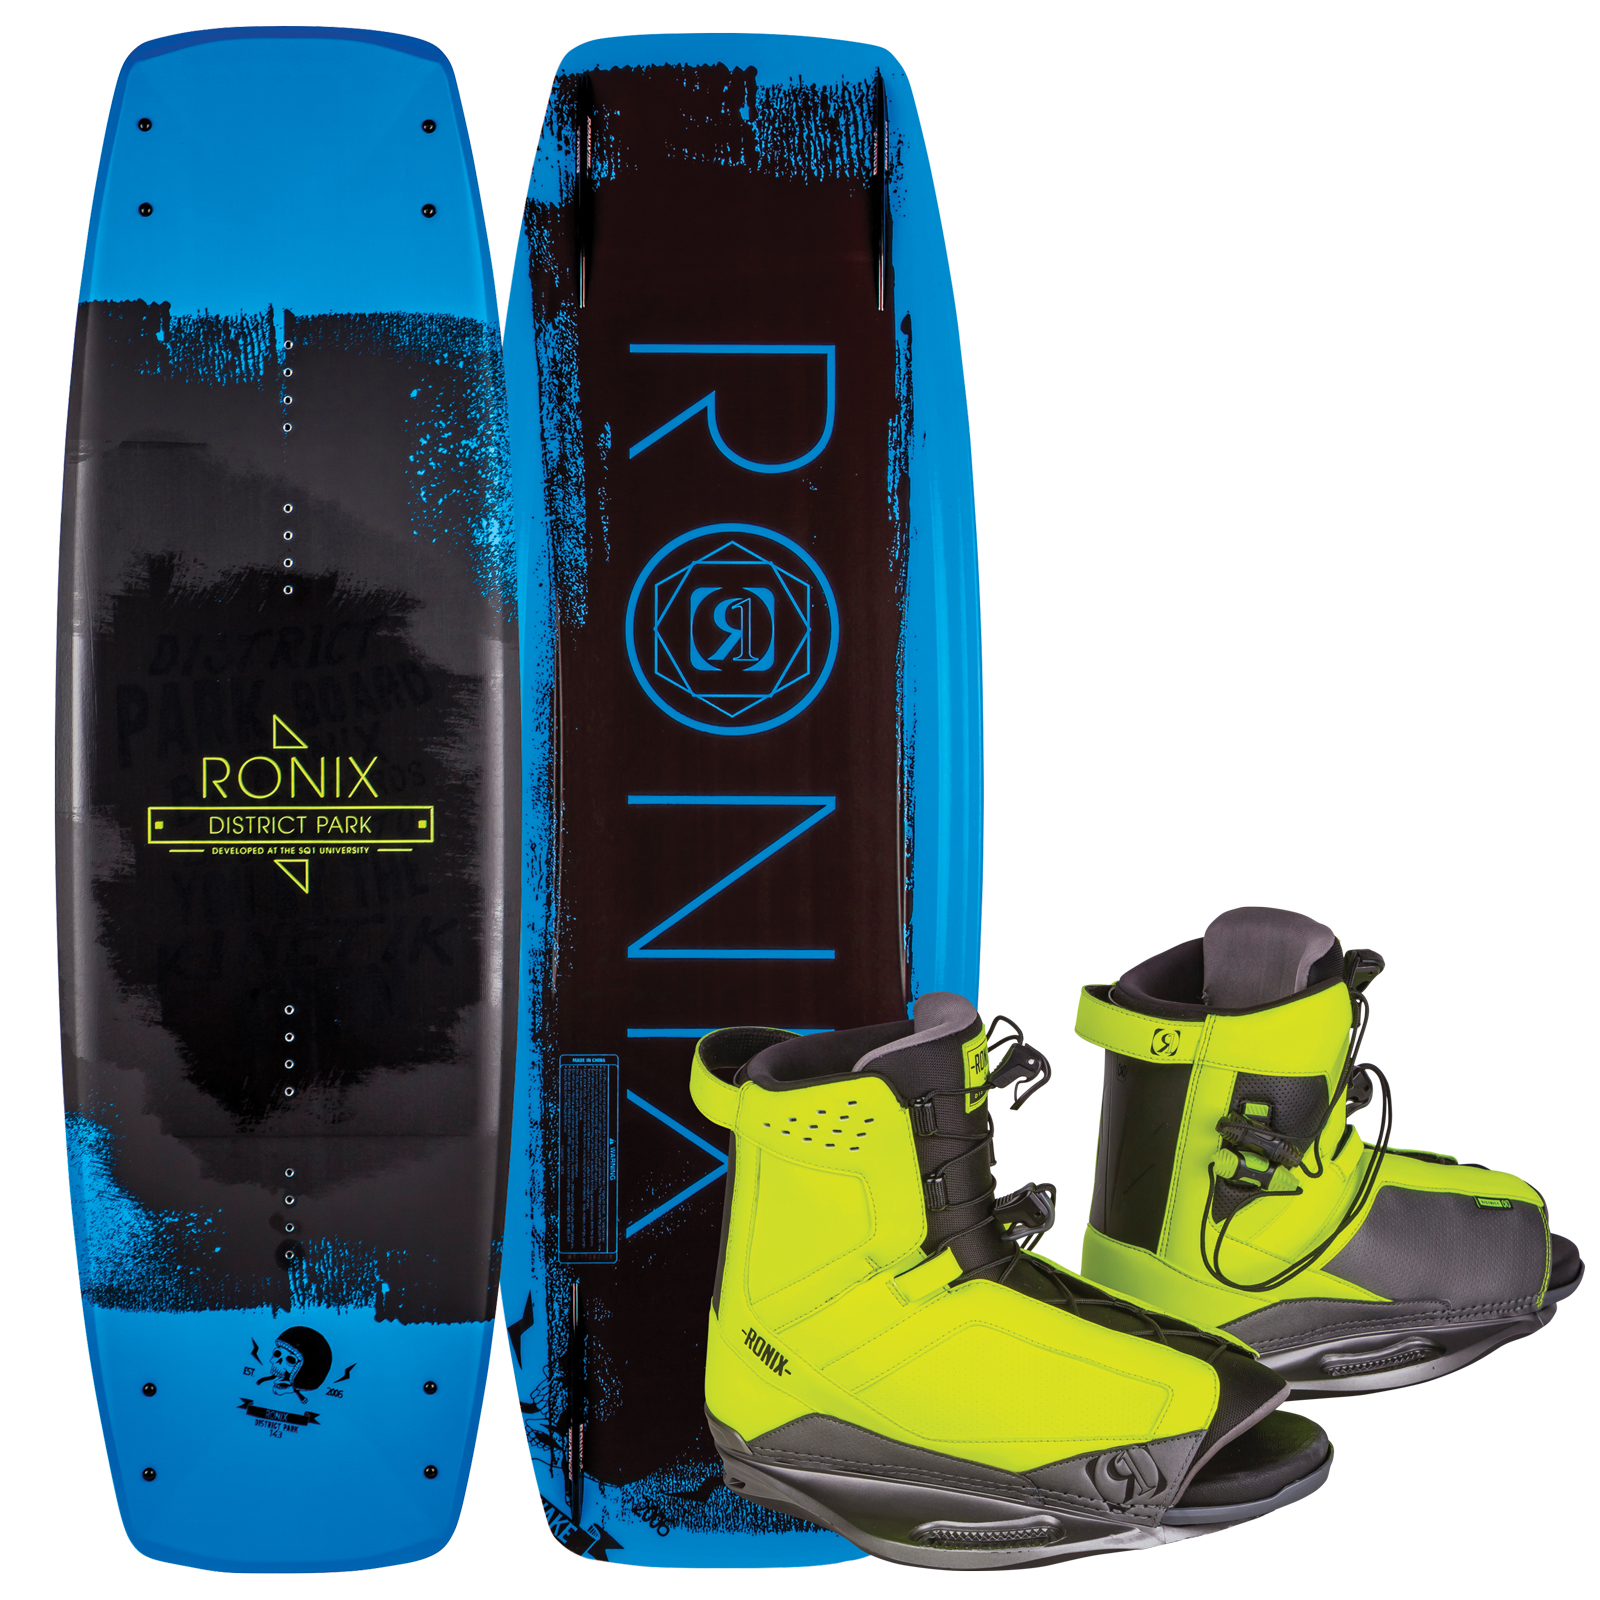 DISTRICT PARK 134 W/ DISTRICT PACKAGE RONIX 2017